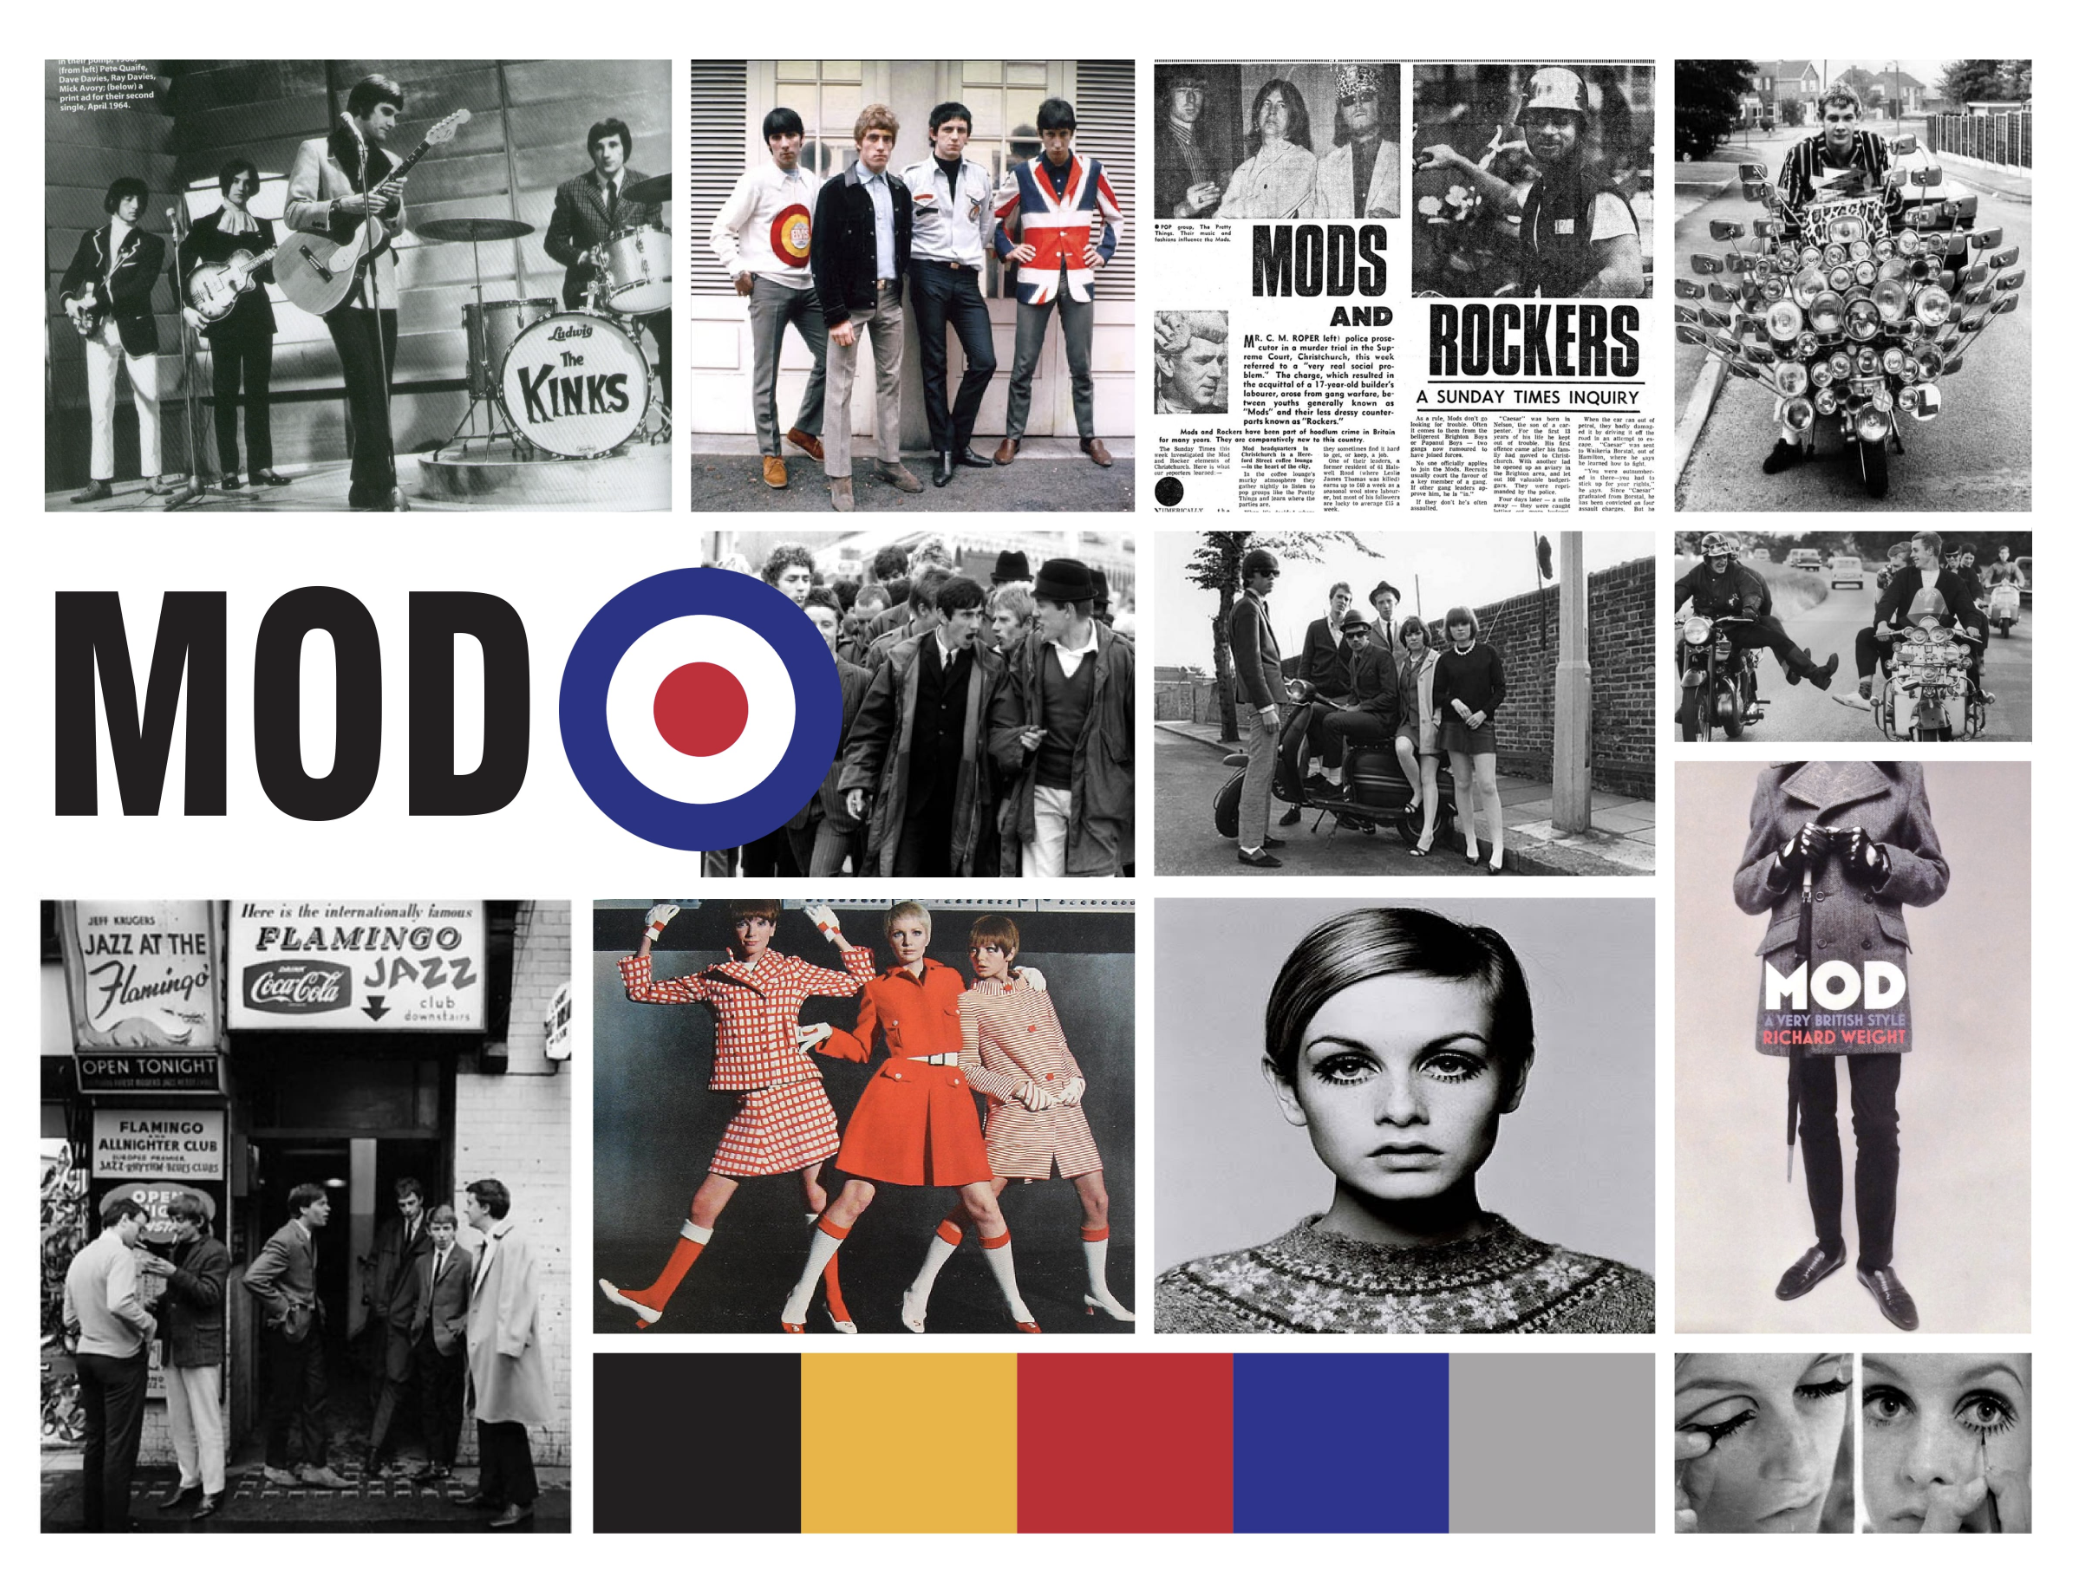 Mod themed mood board was created to determine common themes of the time period